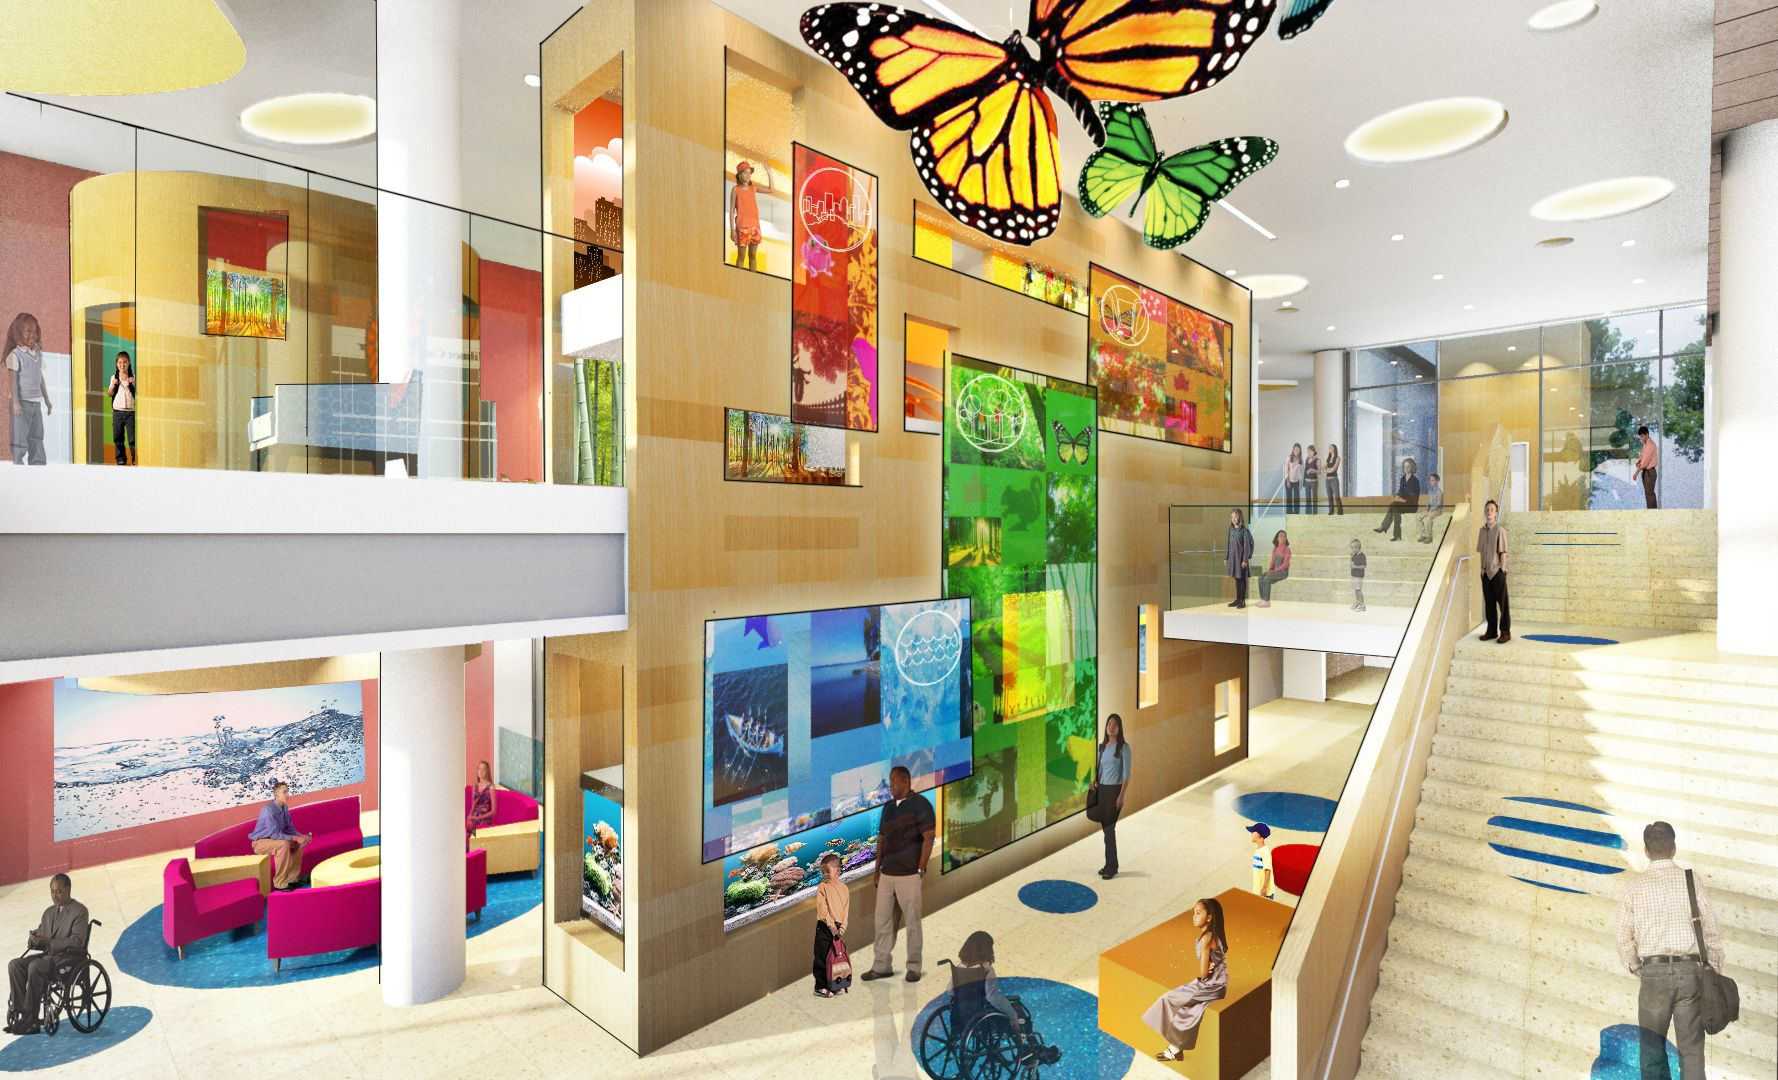 Abit Crazy But Love The Butterfly Sculptures And Colour On Floor Glass